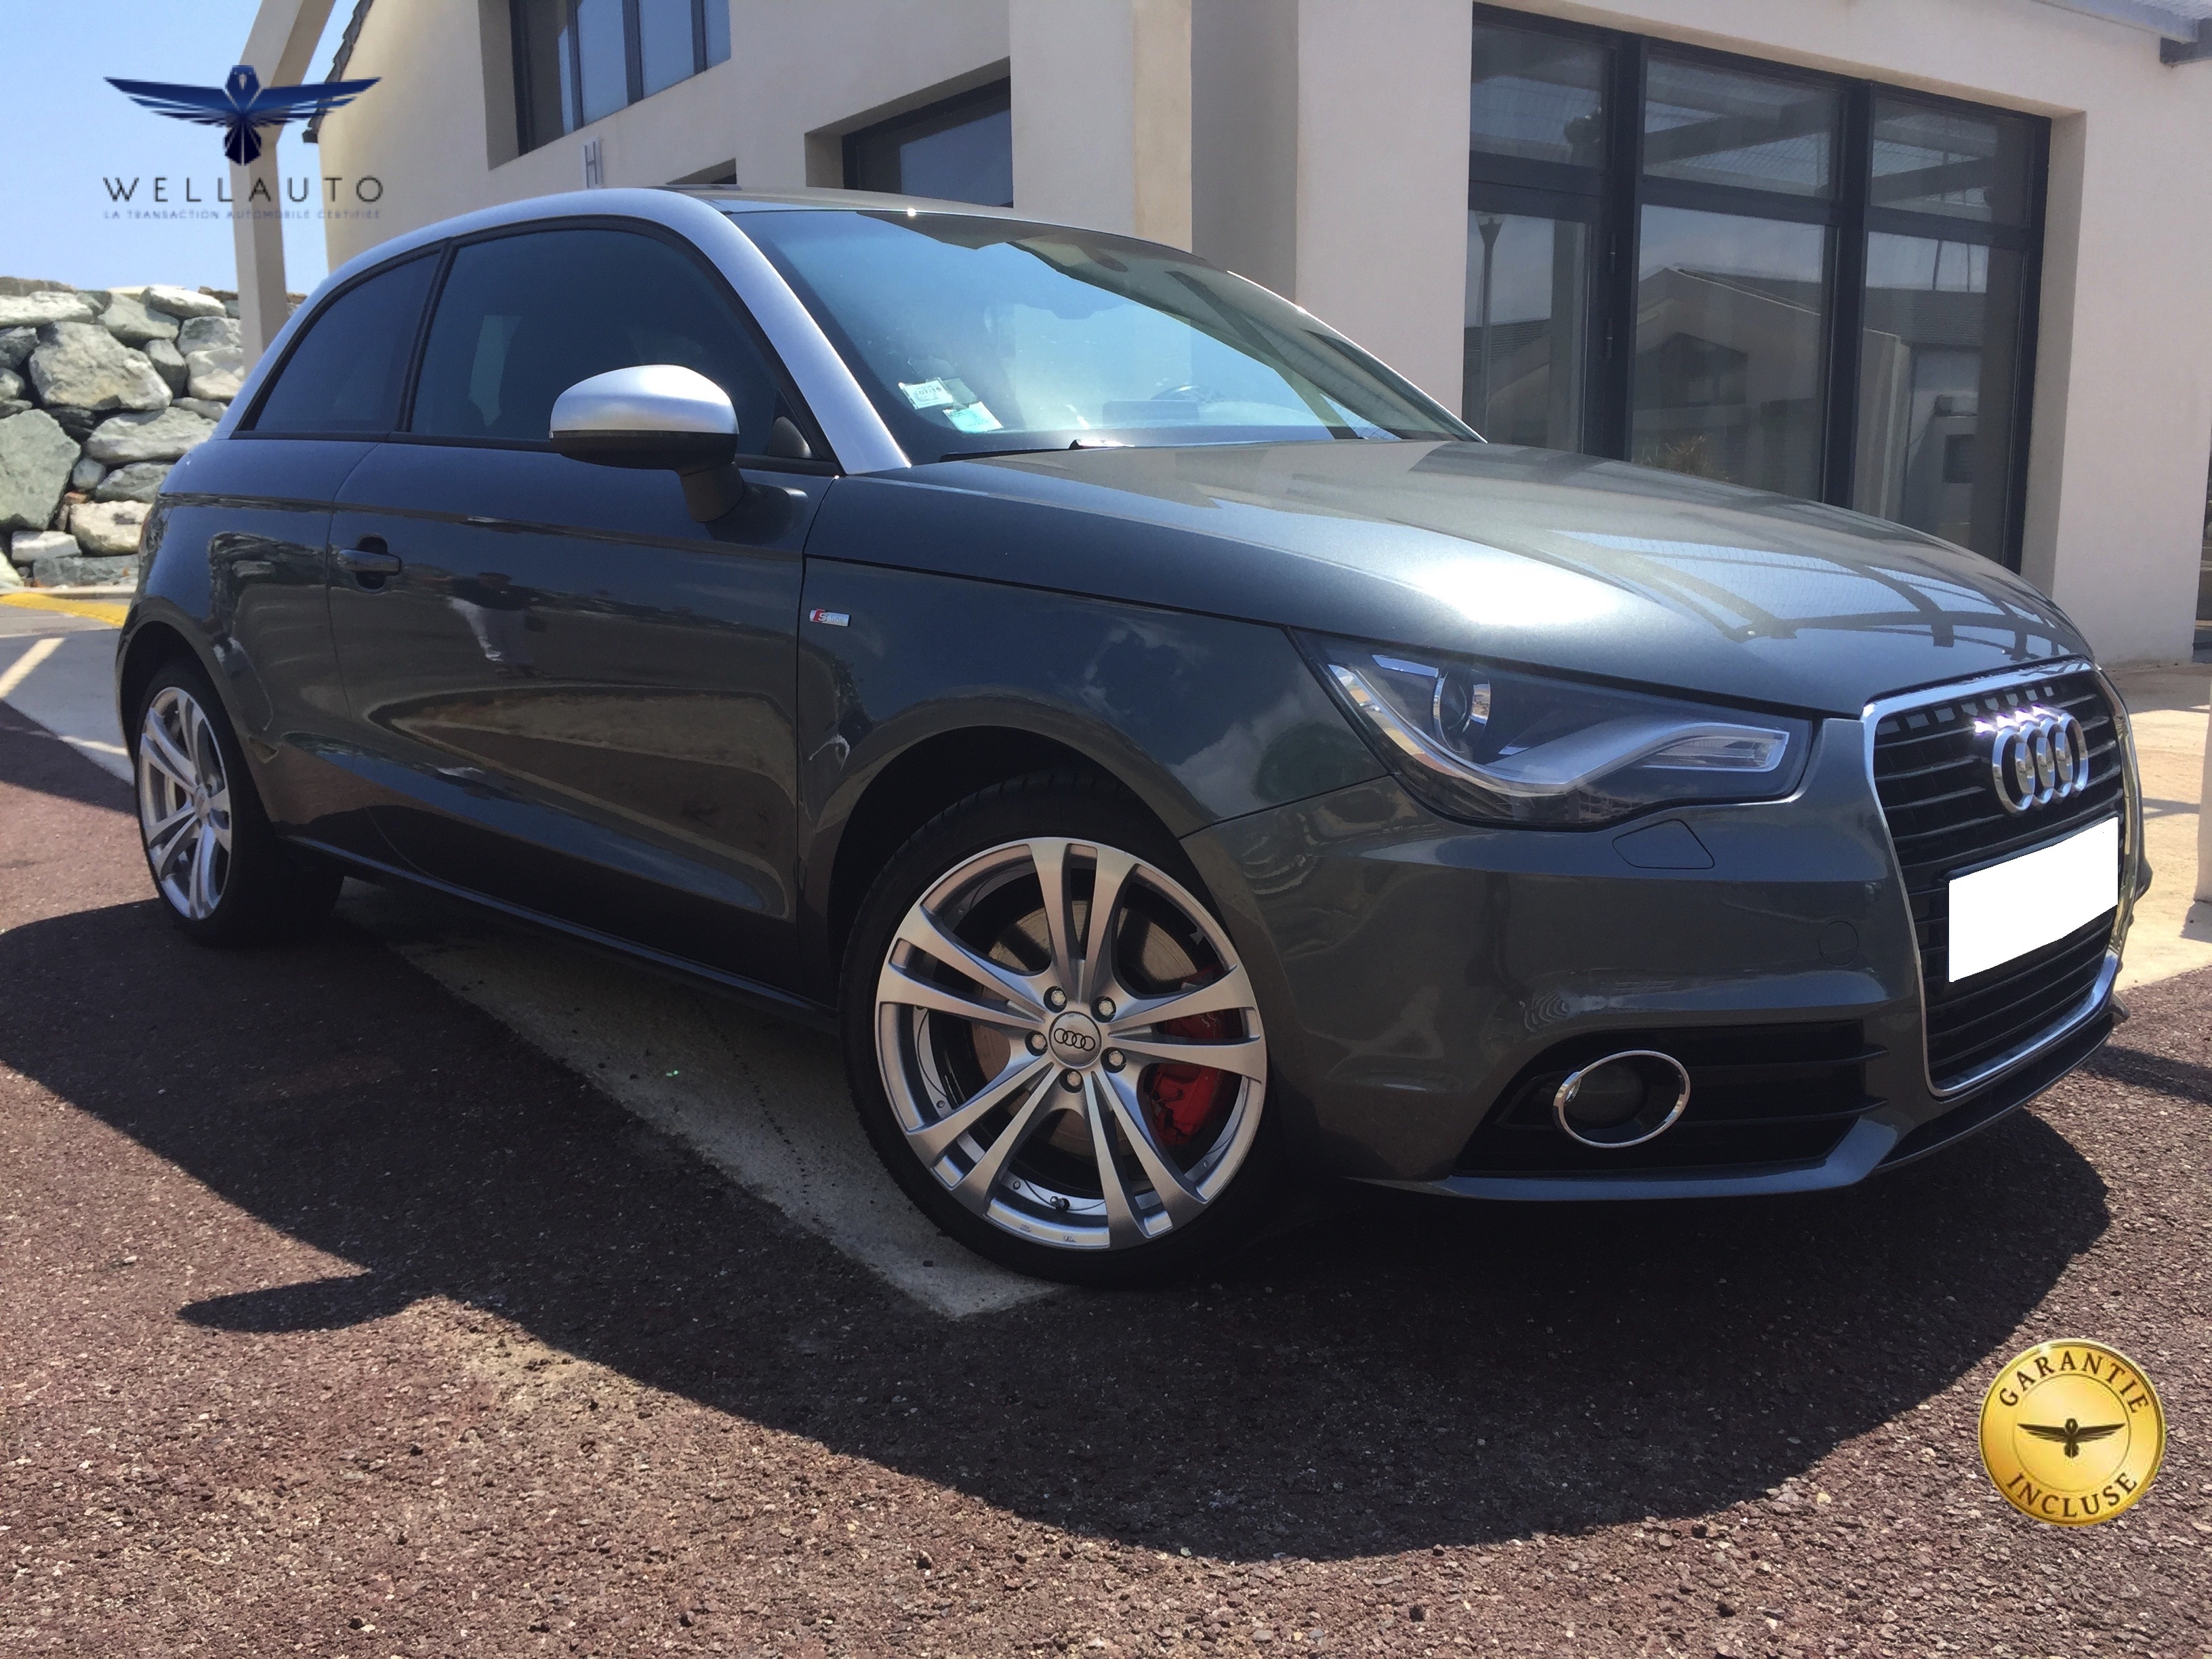 voiture audi a1 2 0 tdi 143 s line occasion diesel 2012 53000 km 15890 ville di. Black Bedroom Furniture Sets. Home Design Ideas